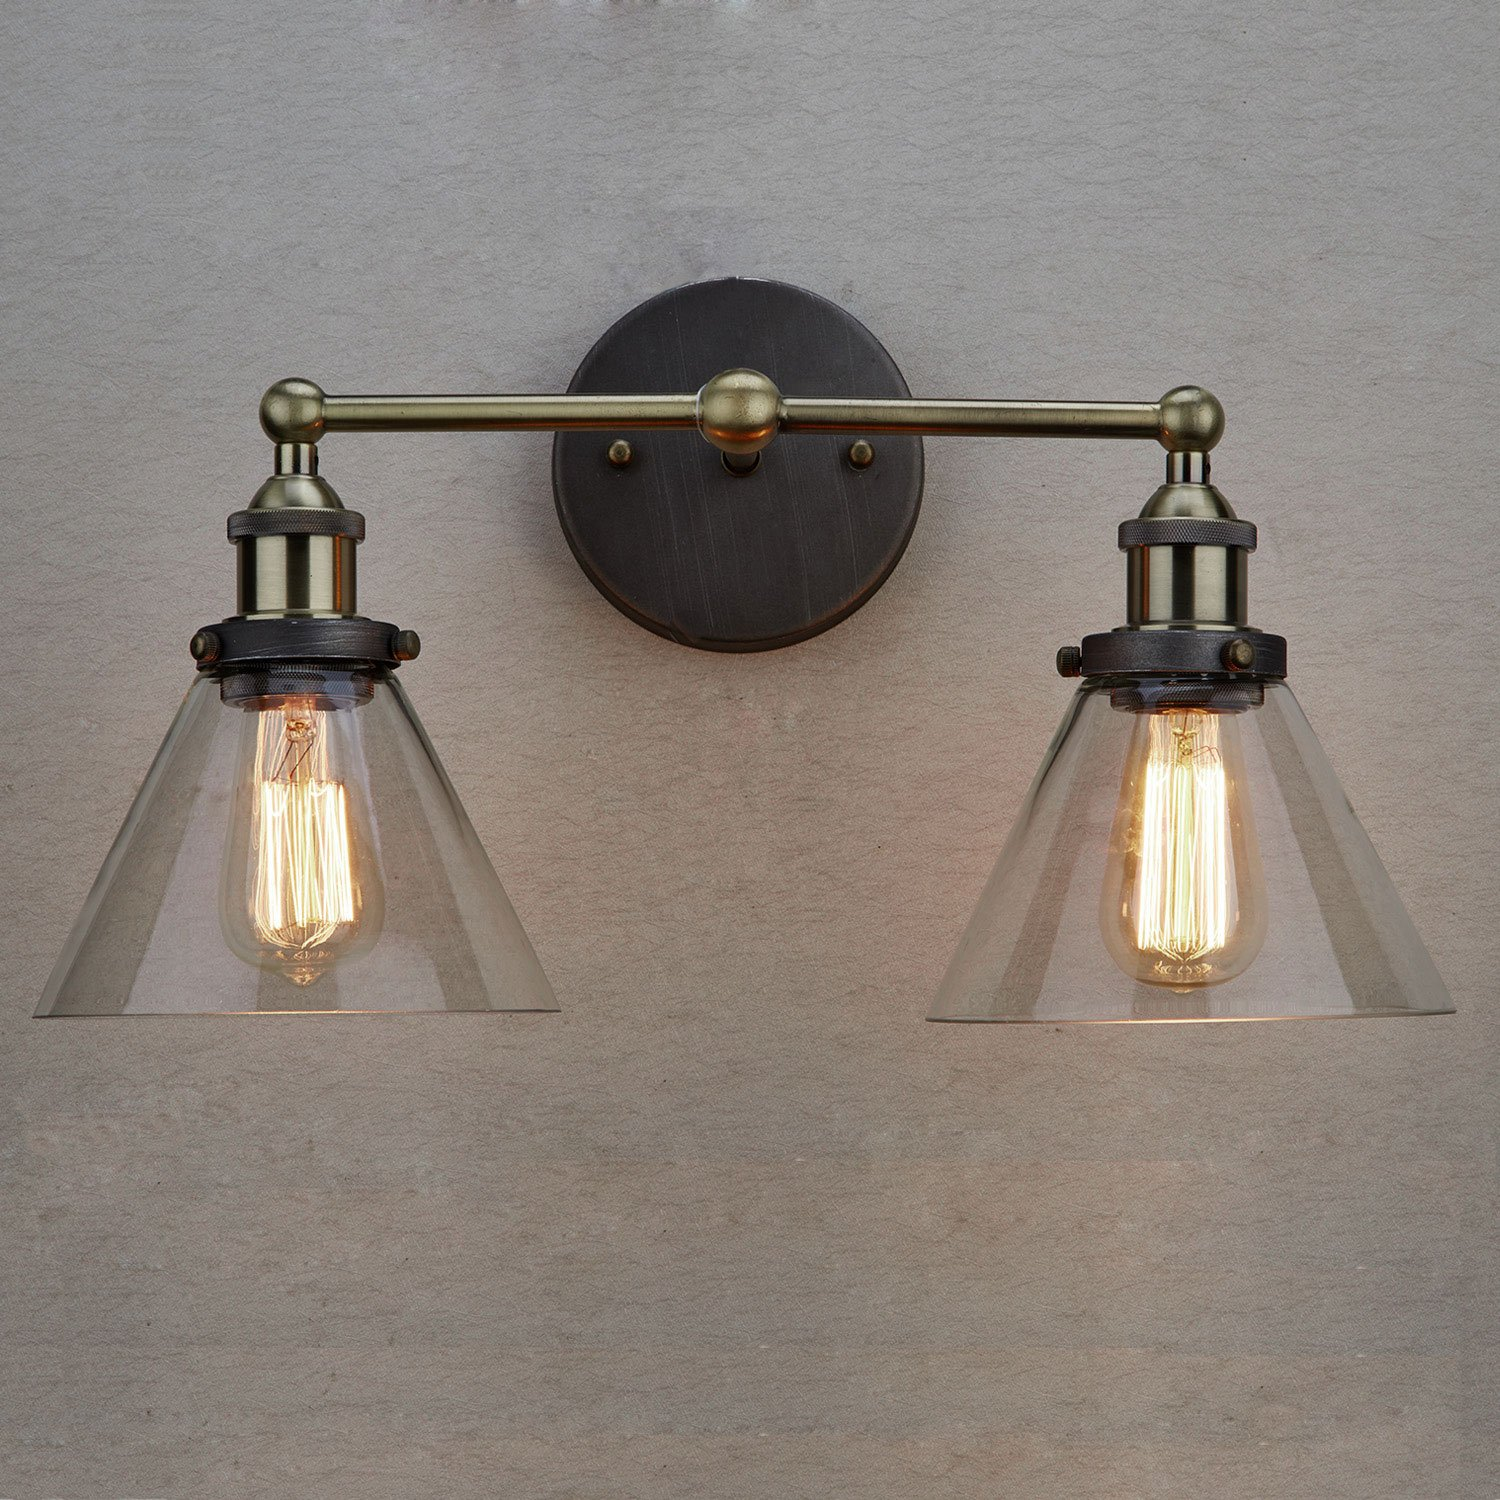 Claxy ecopower simplicity industrial edison antique glass 2 light claxy ecopower simplicity industrial edison antique glass 2 light wall sconces fixture amazon aloadofball Image collections